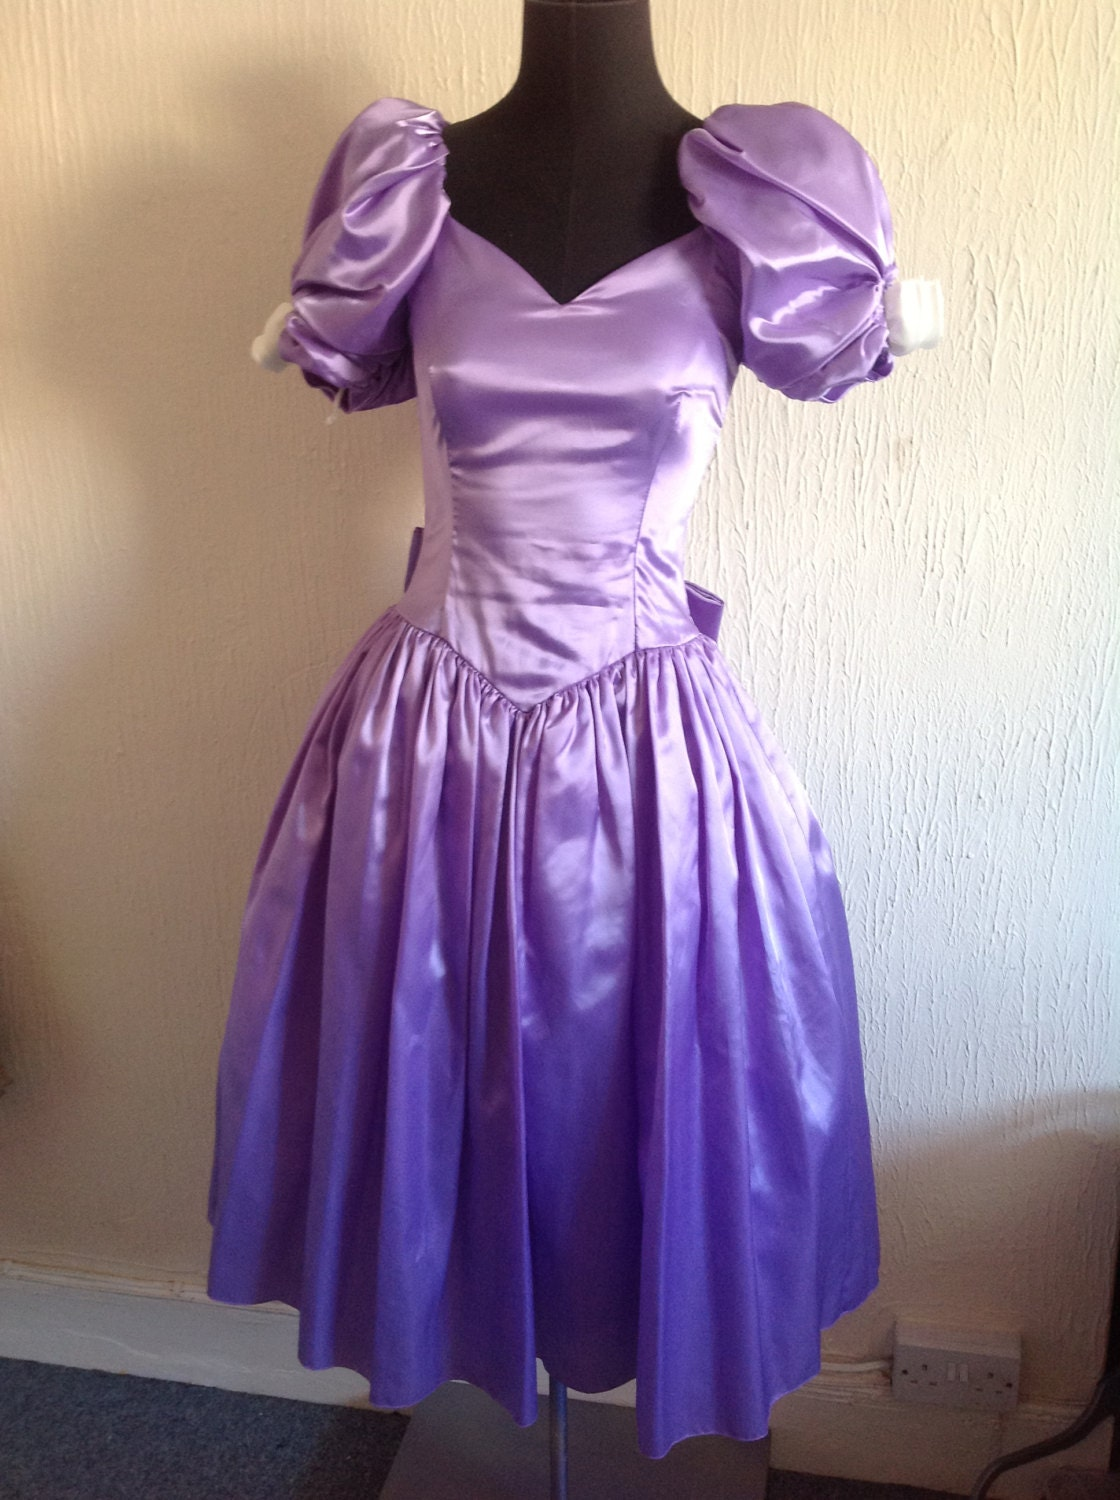 1950's Inspired Bridesmaid dress 80's Vintage | 1120 x 1500 jpeg 298kB